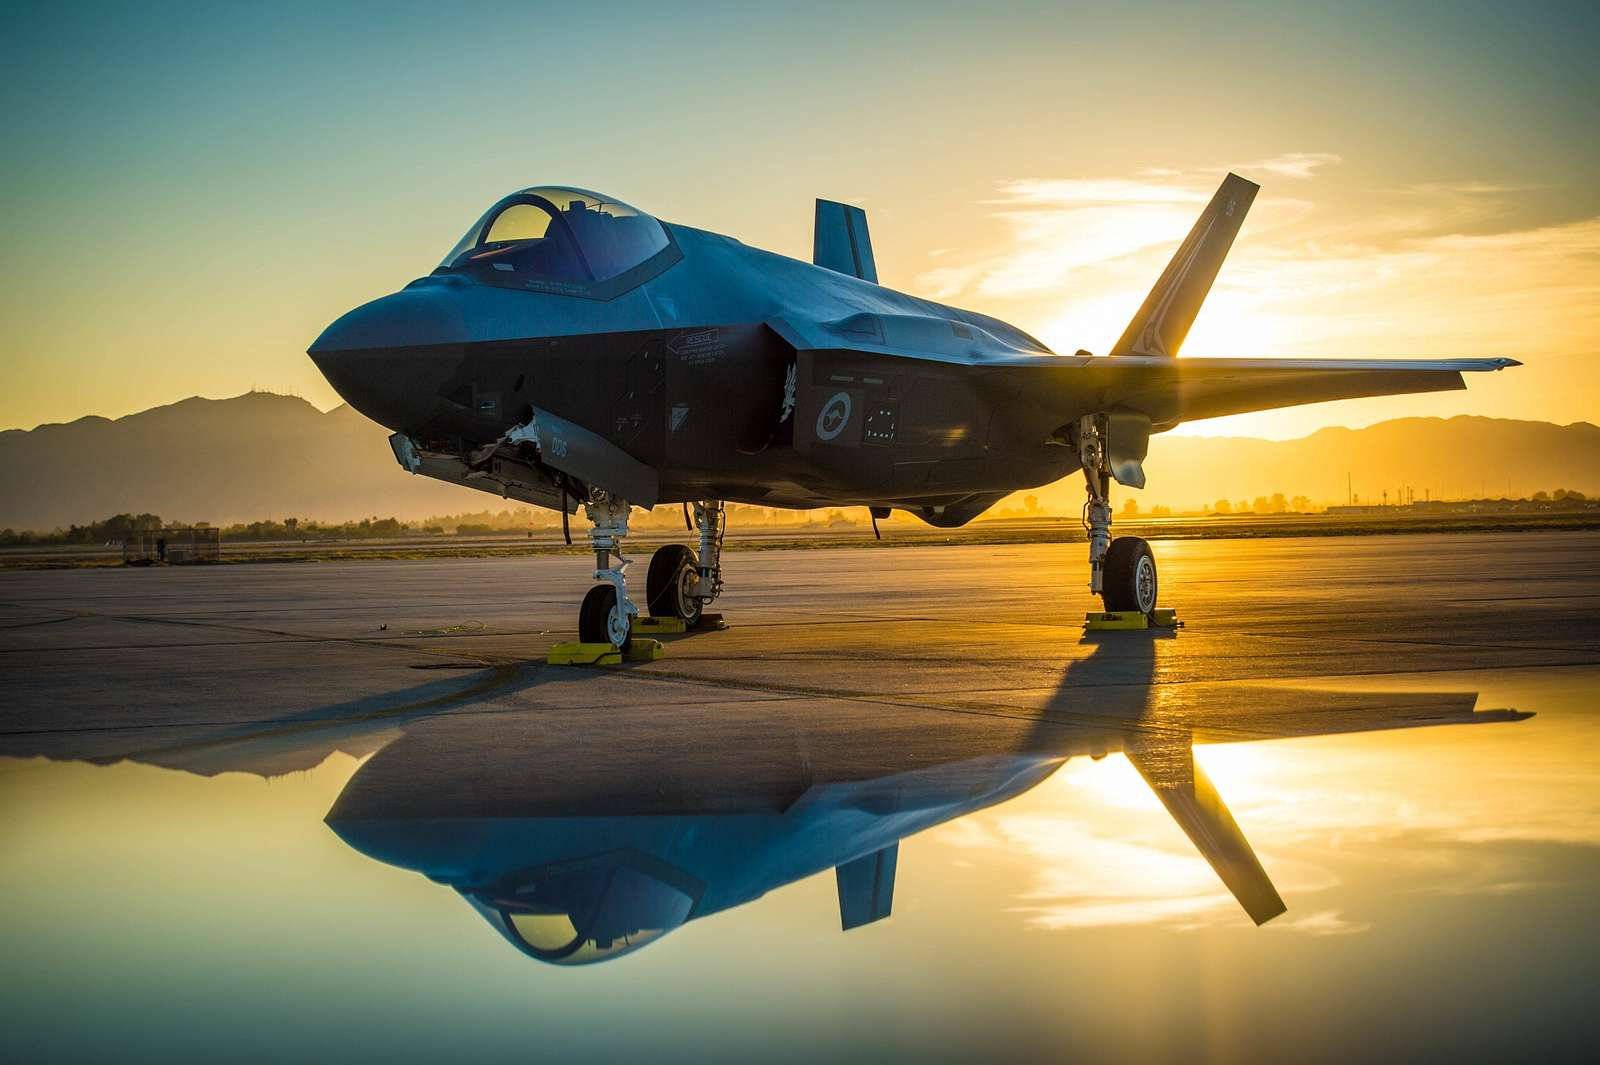 Australian Lockheed Martin F-35 Lightning II  -  Luke Air Force Base, AZ, UNITED STATES 06.27.2018